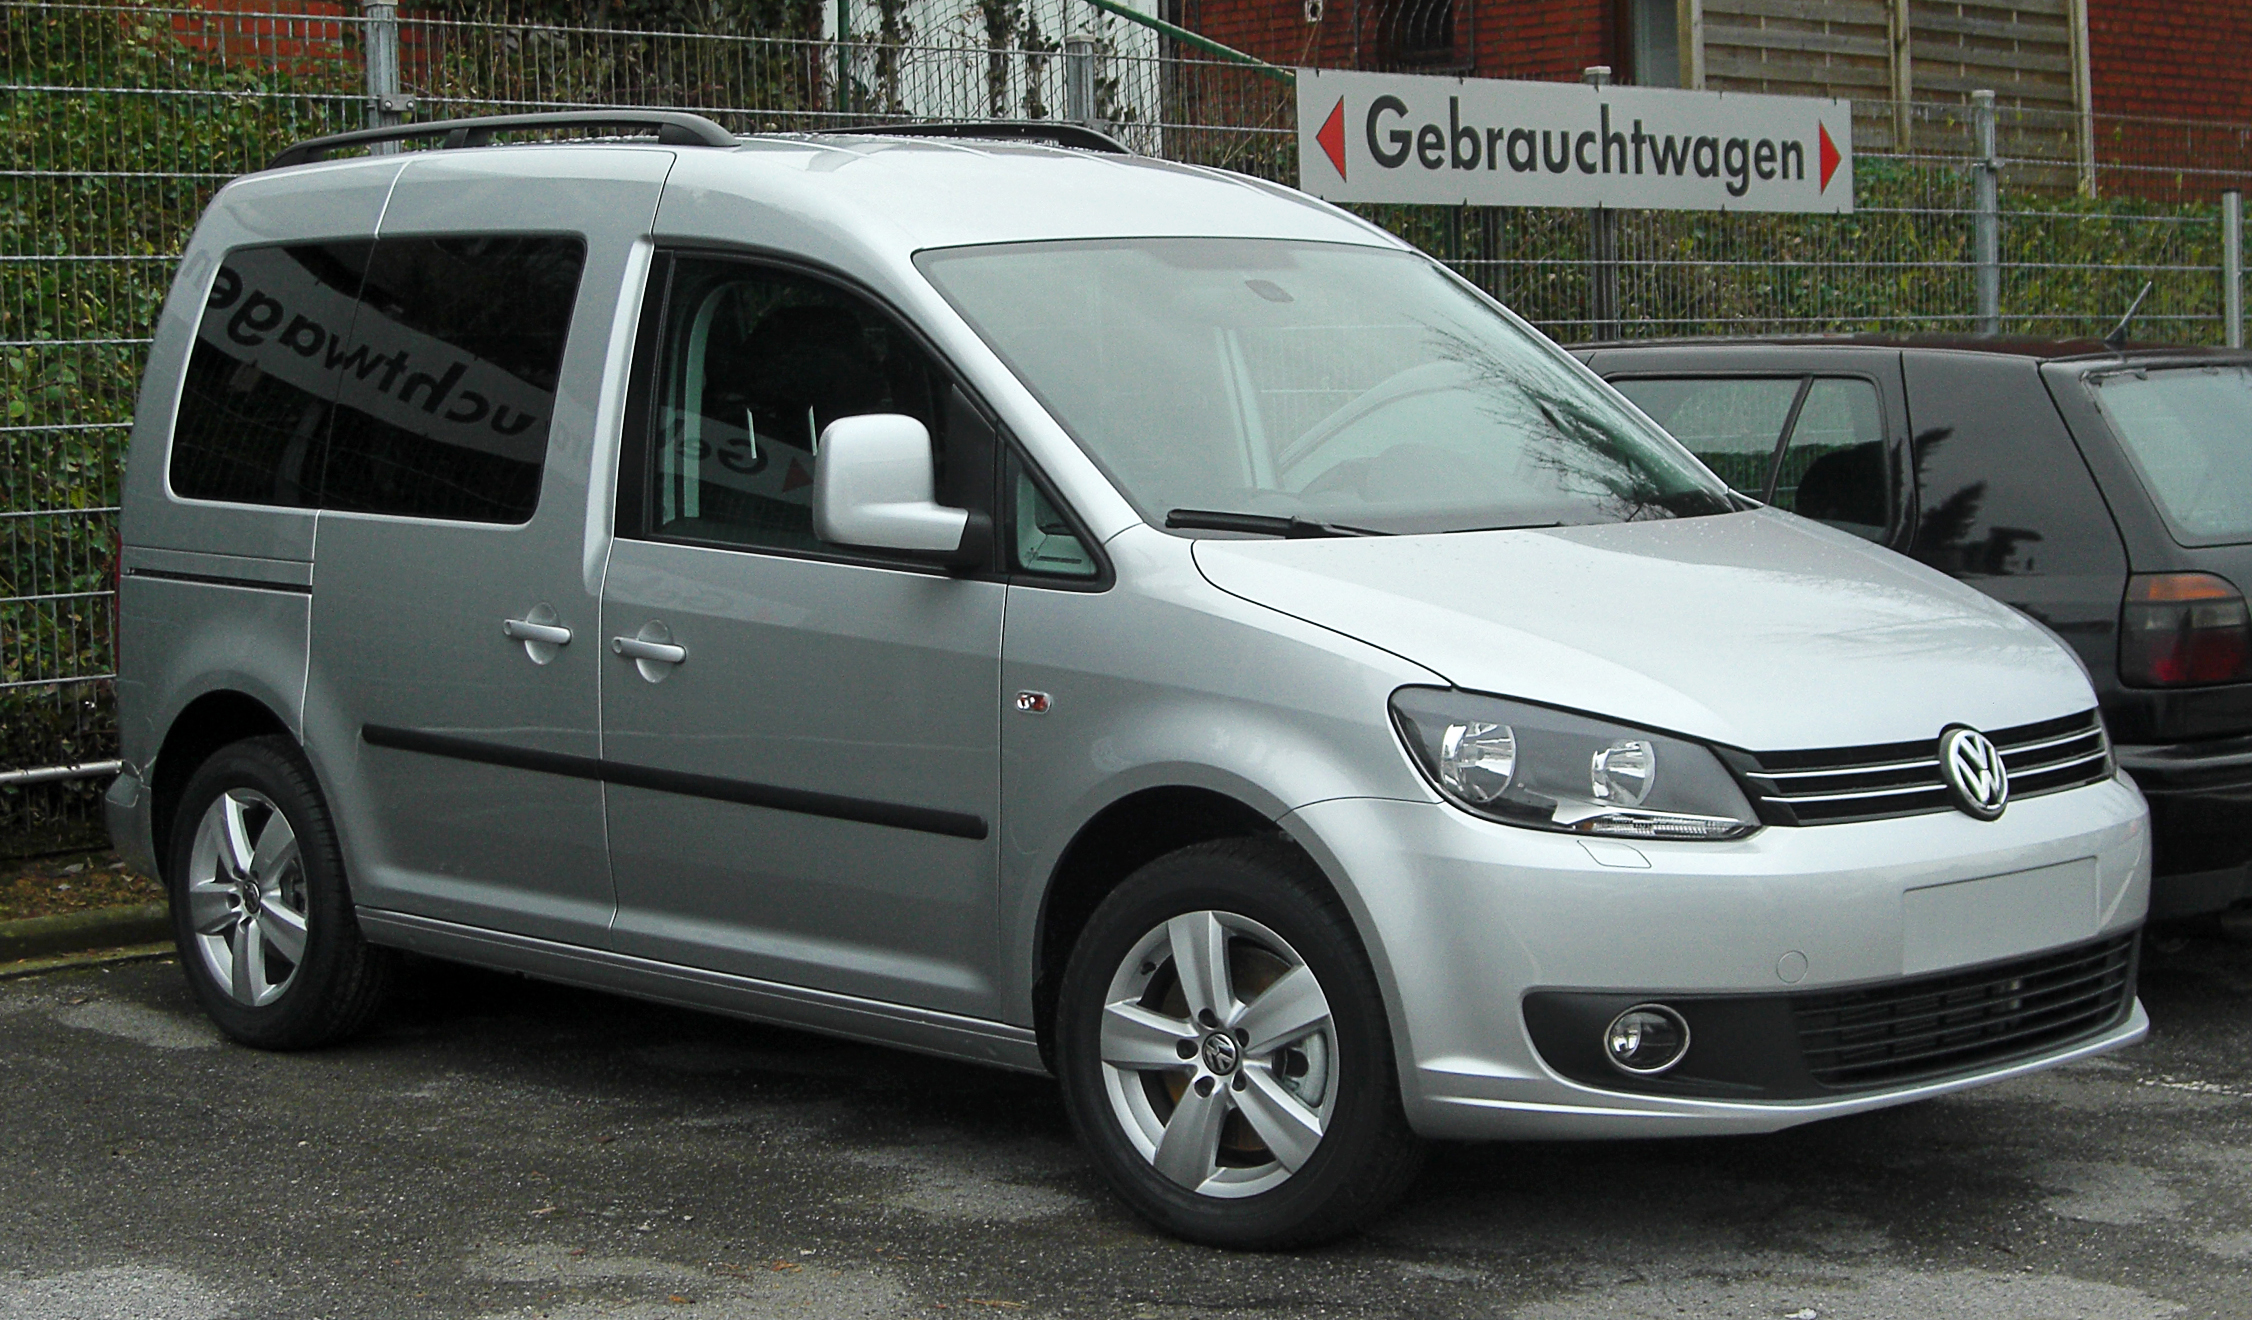 Description VW Caddy (2K, Facelift) front 20110115.jpg